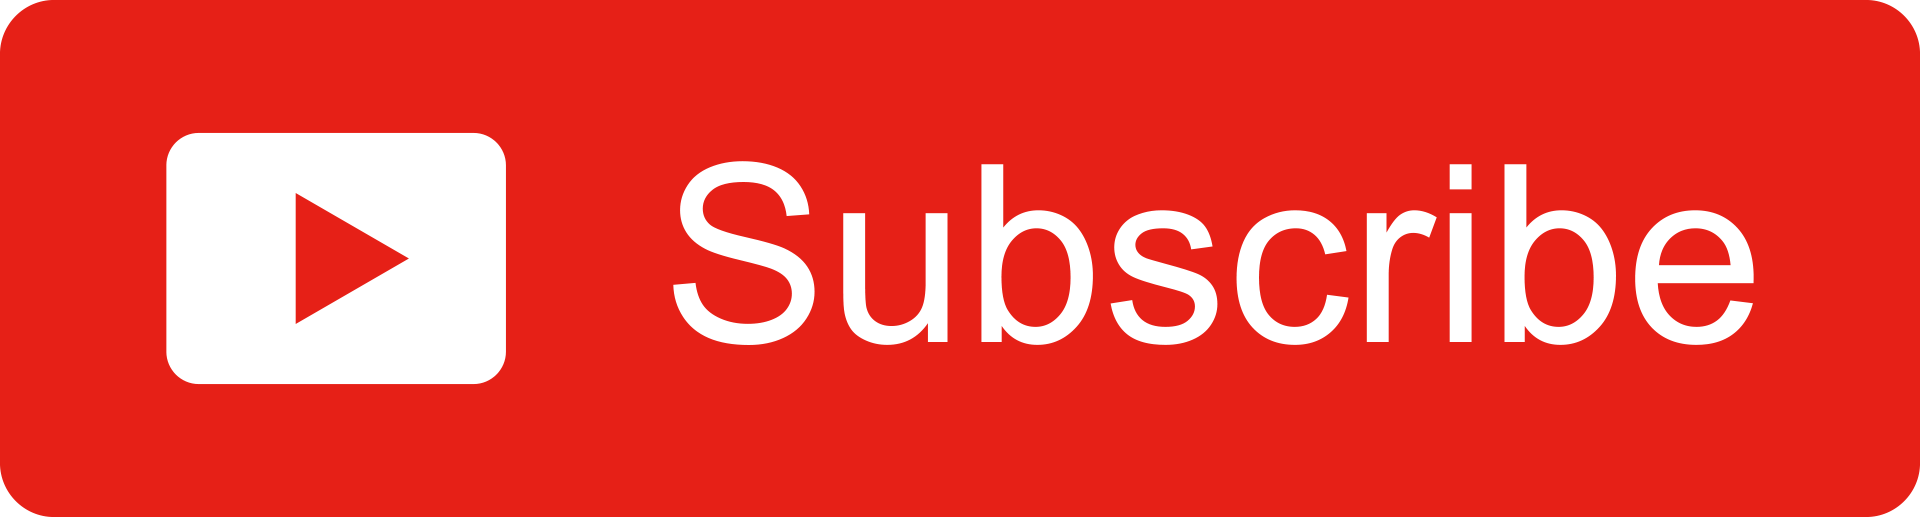 Free Youtube Subscribe Button Png Download By Alfredocreates by.